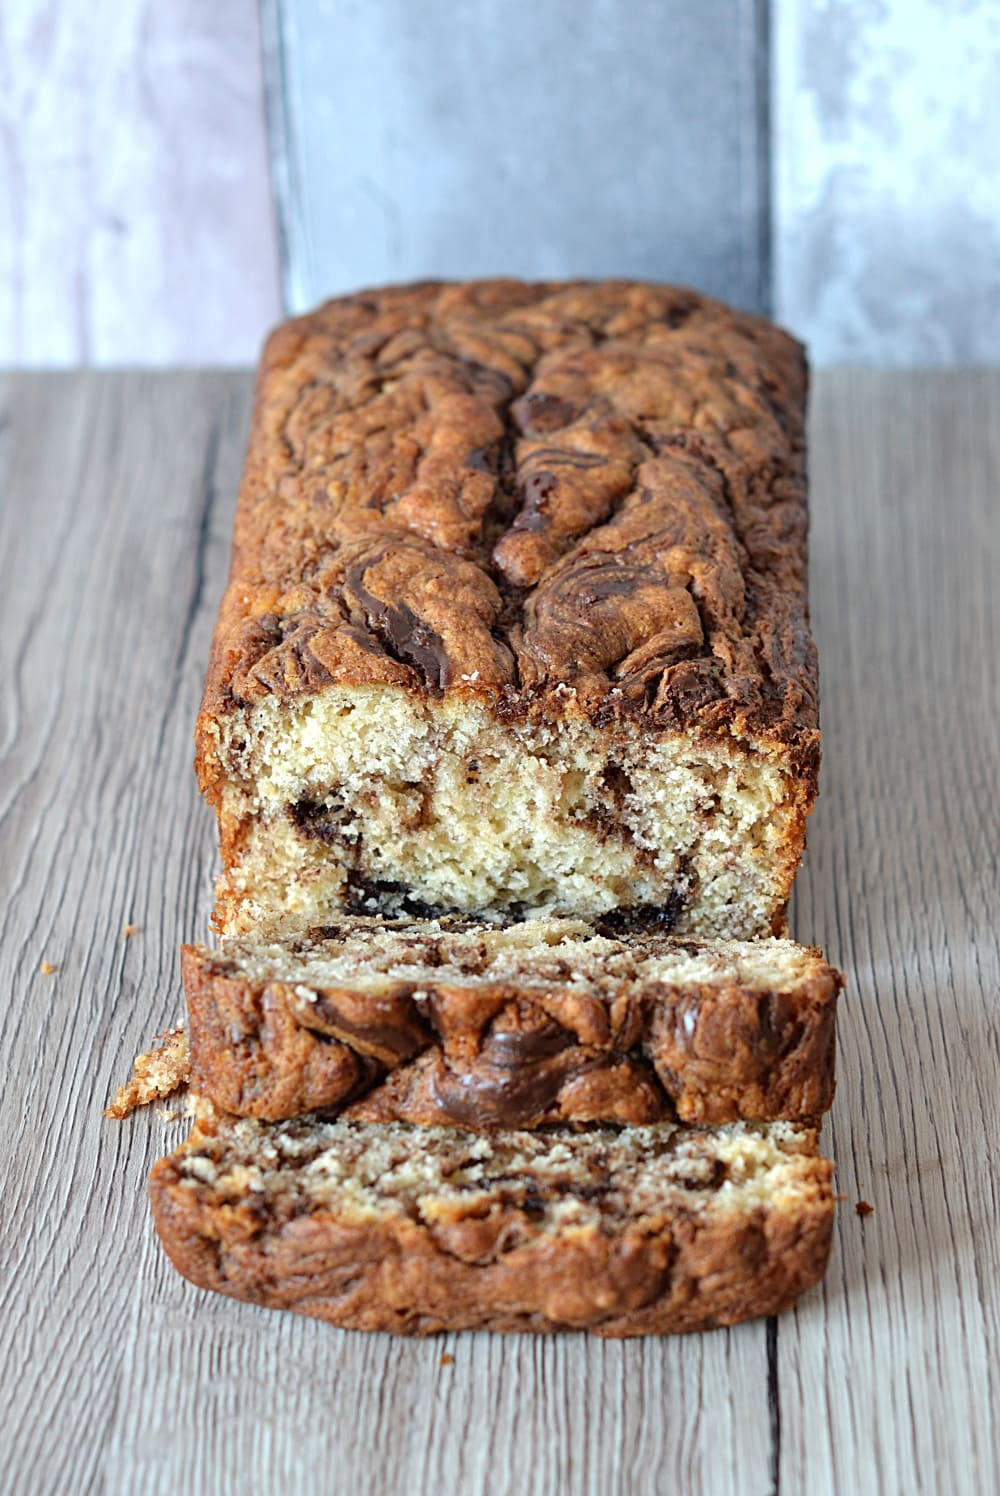 Banana Nutella Loaf - The classic banana bread with a chocolate spread twist.